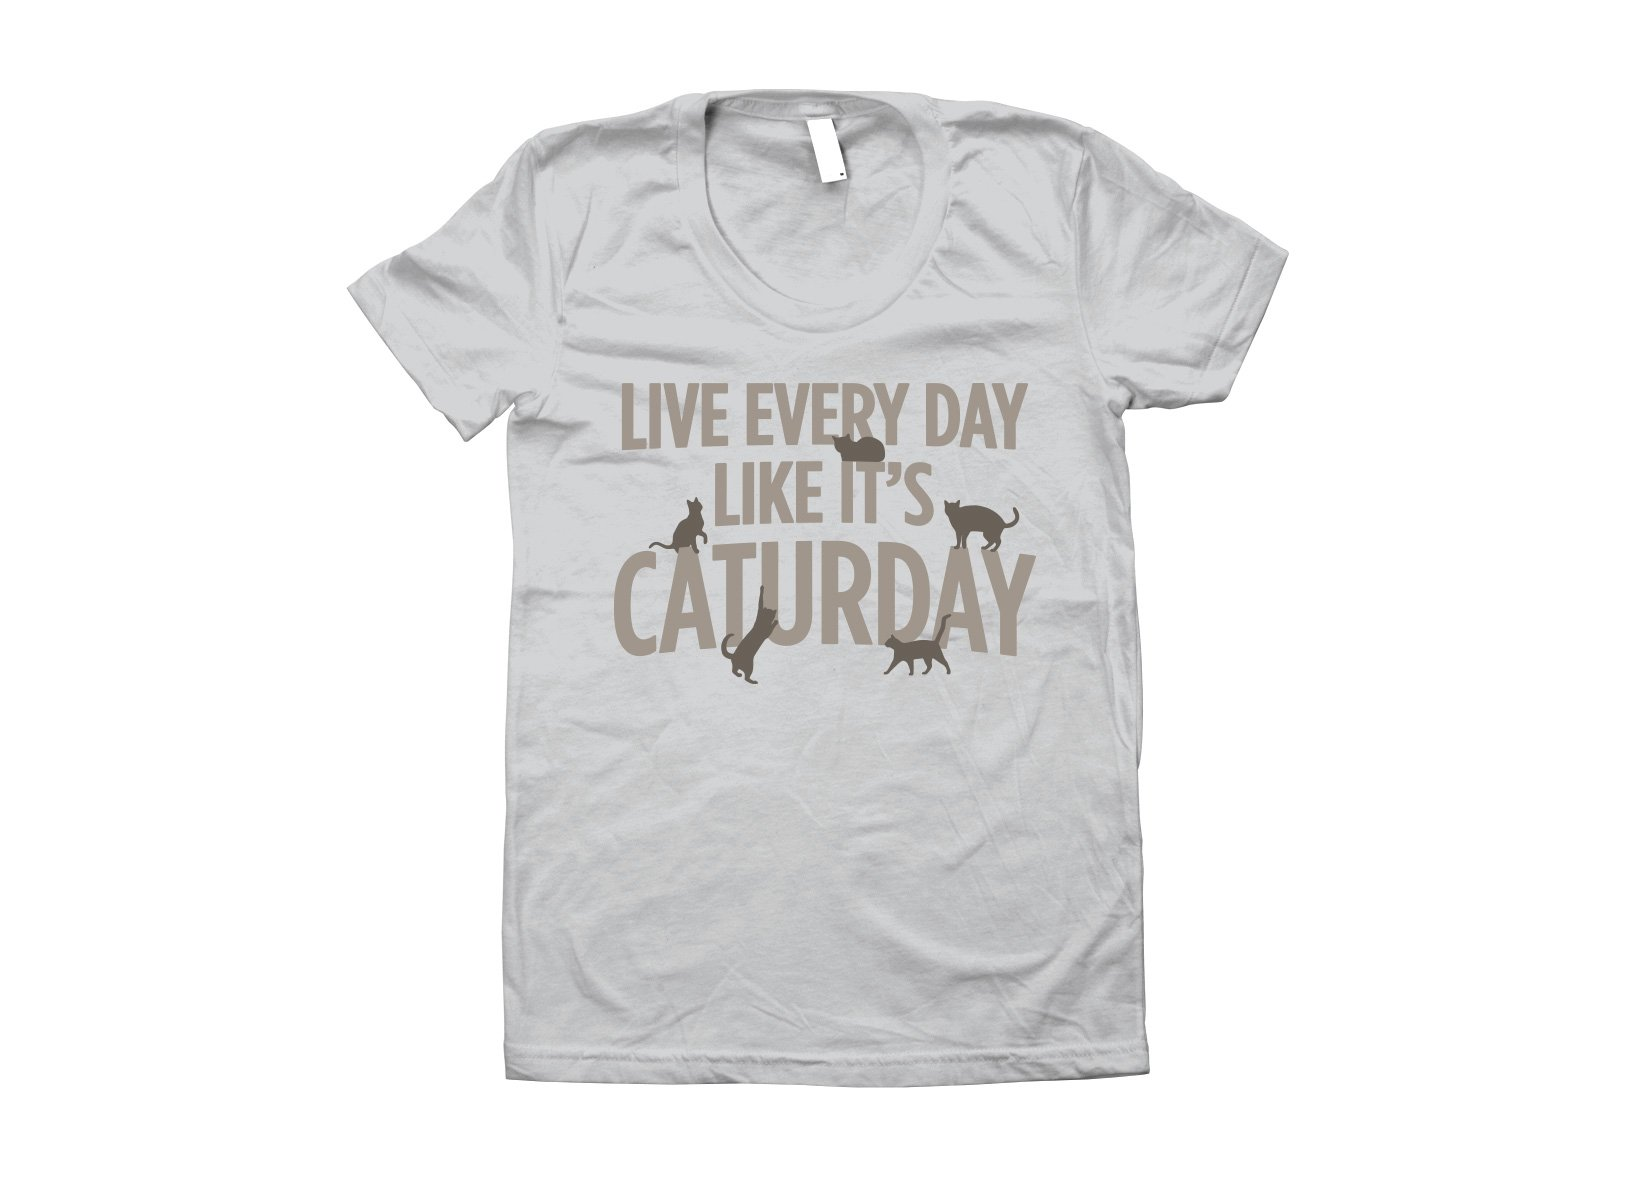 Live Every Day Like It's Caturday on Juniors T-Shirt